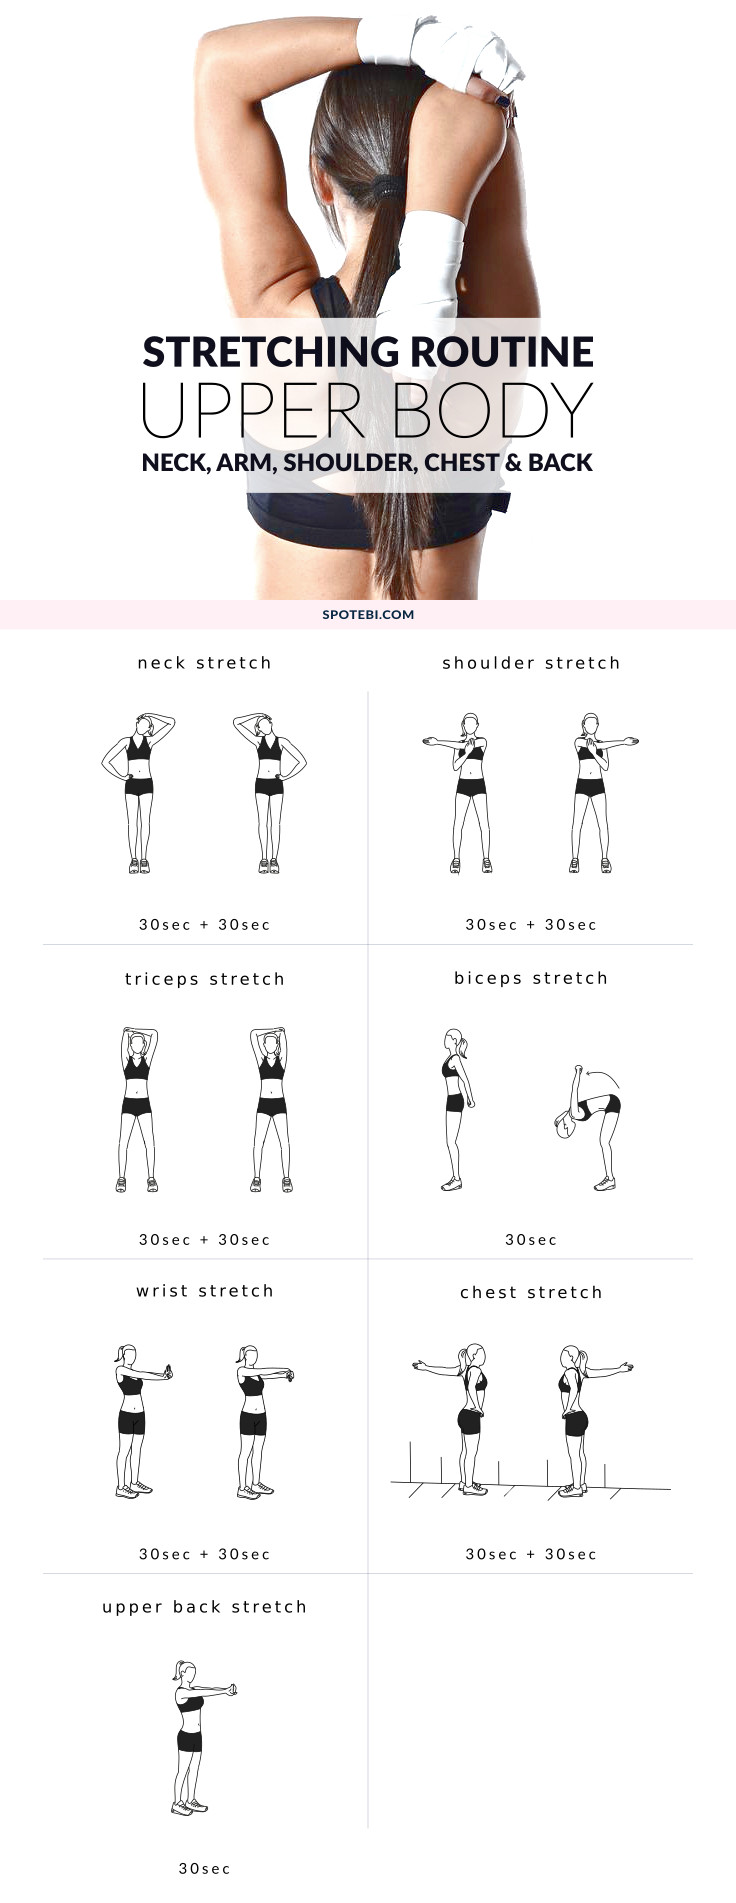 Healthy recipes #upper #stretches upper body stretches upper body free weight